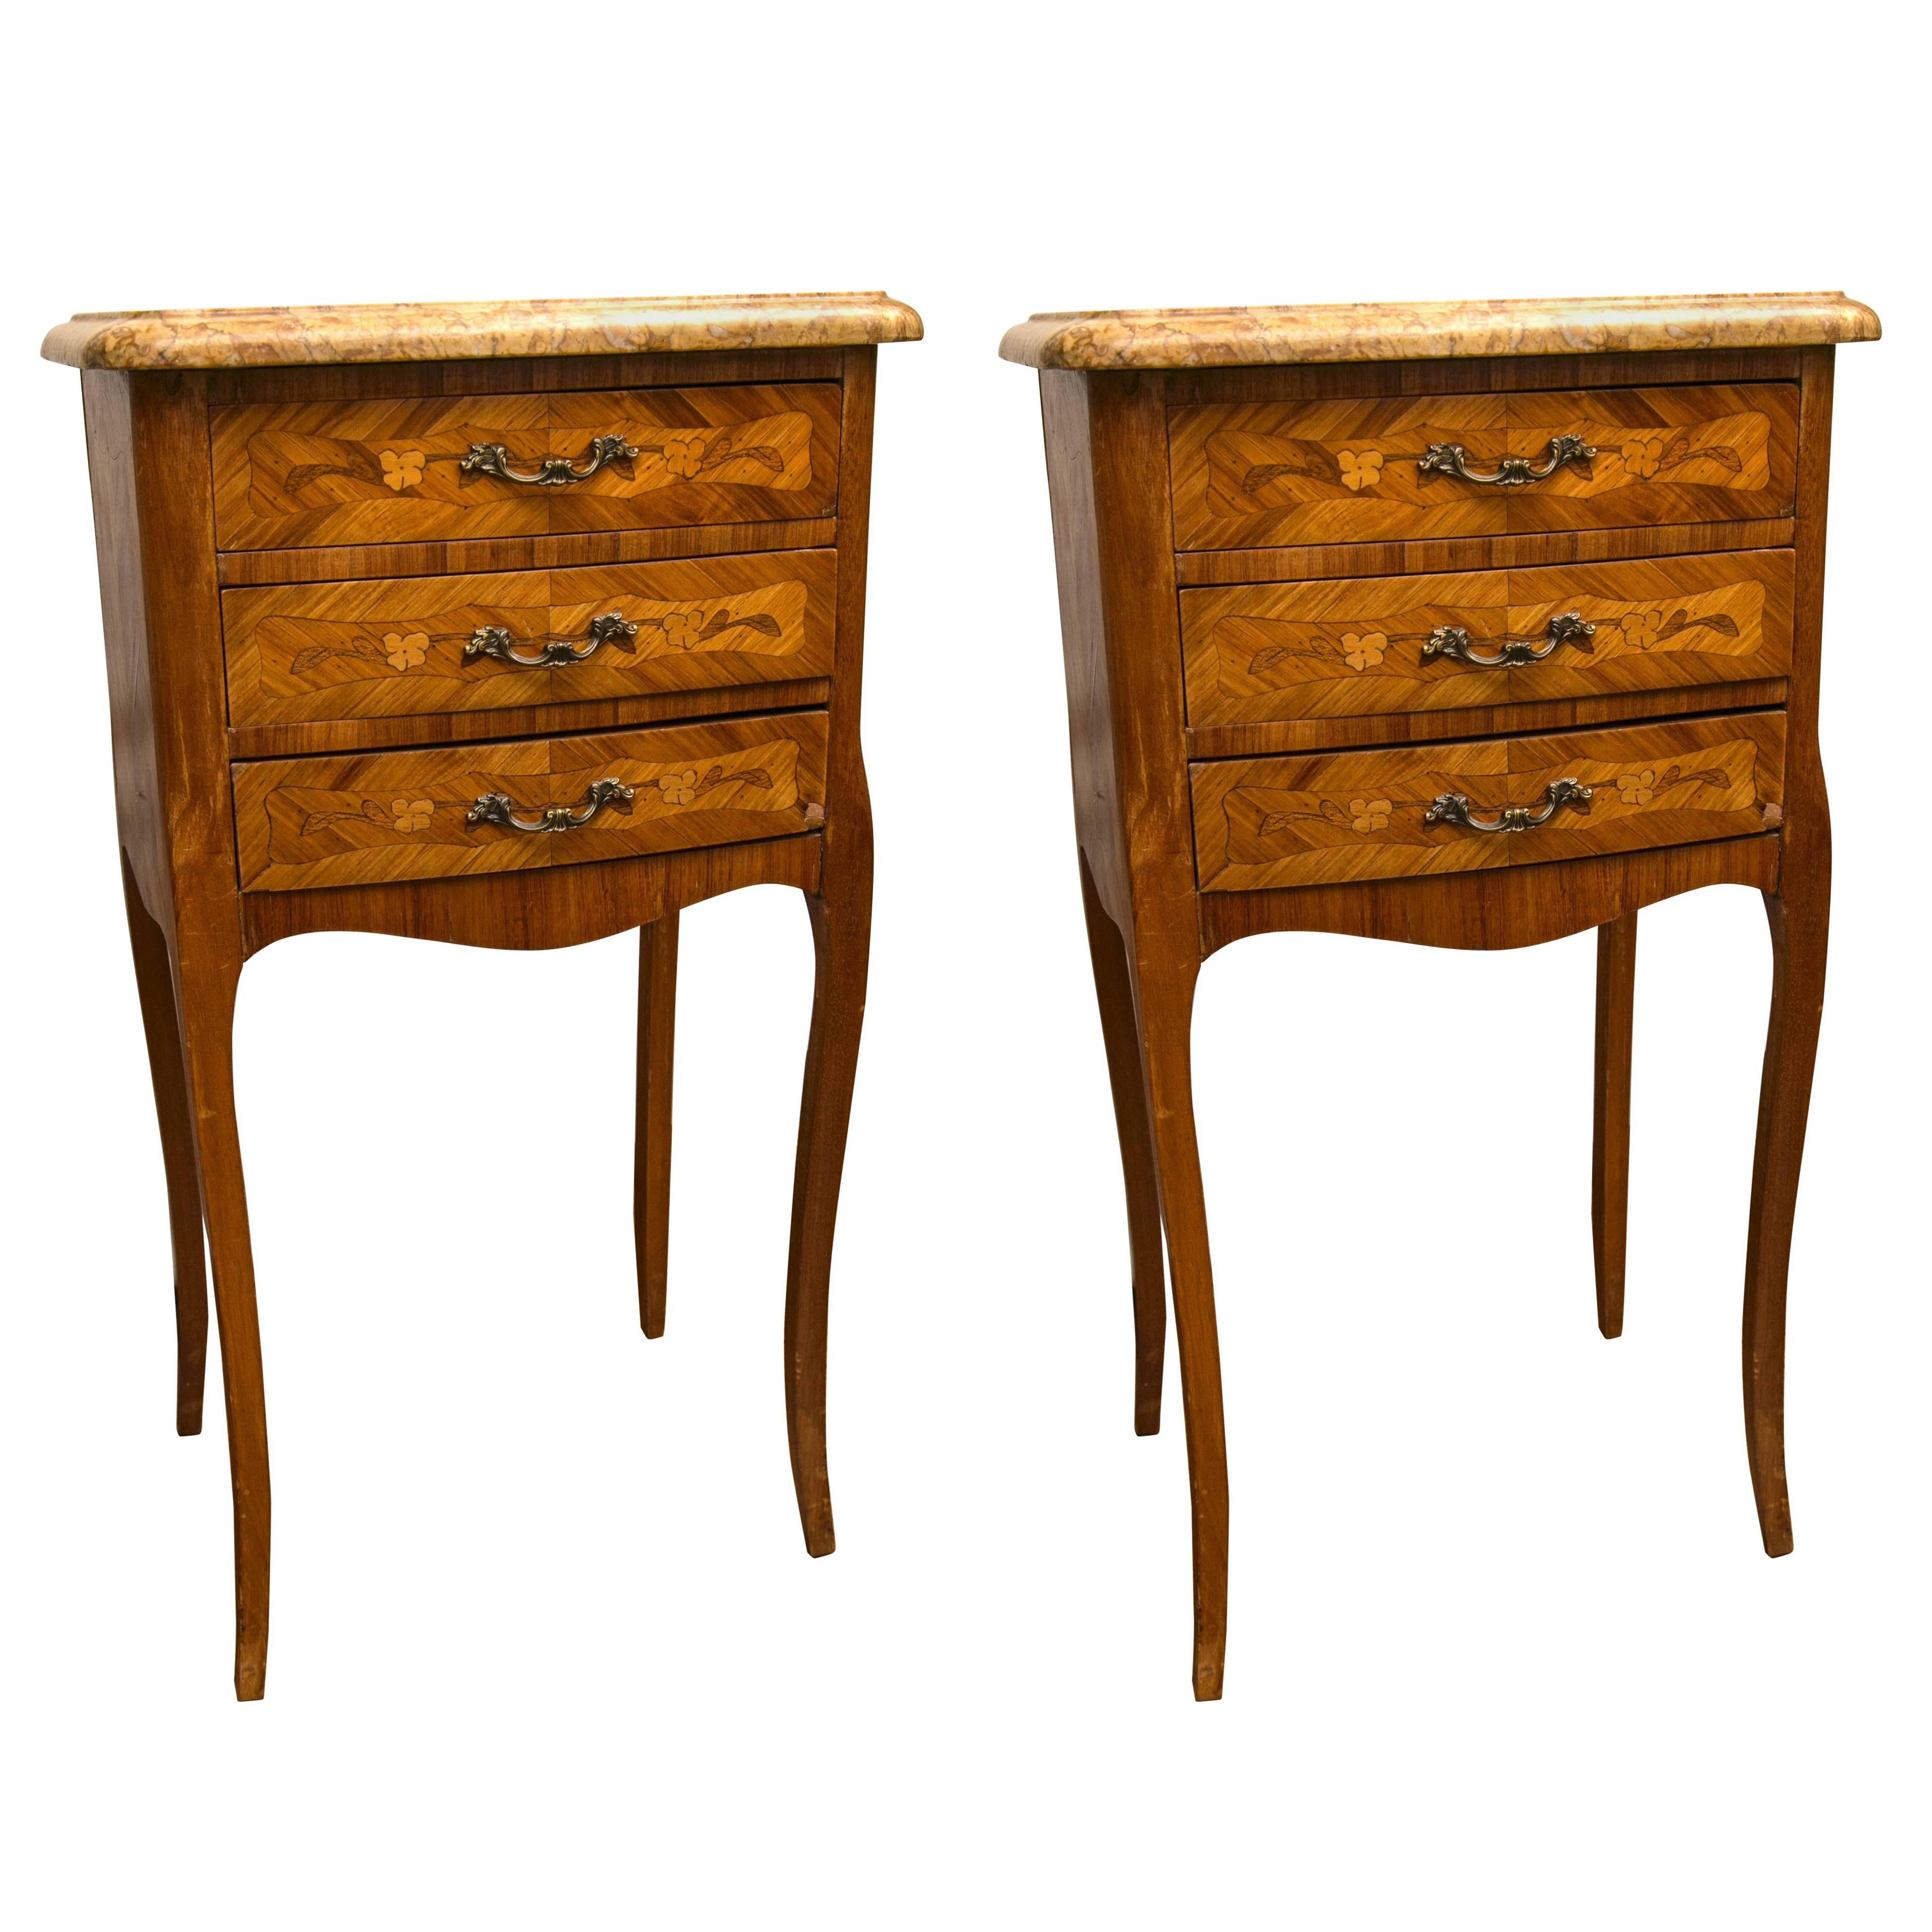 pair three drawer marble top bedside end tables for master table with drawers parawood coffee wooden dog travel crate liberty beds mainstays desk instructions postmodern furniture